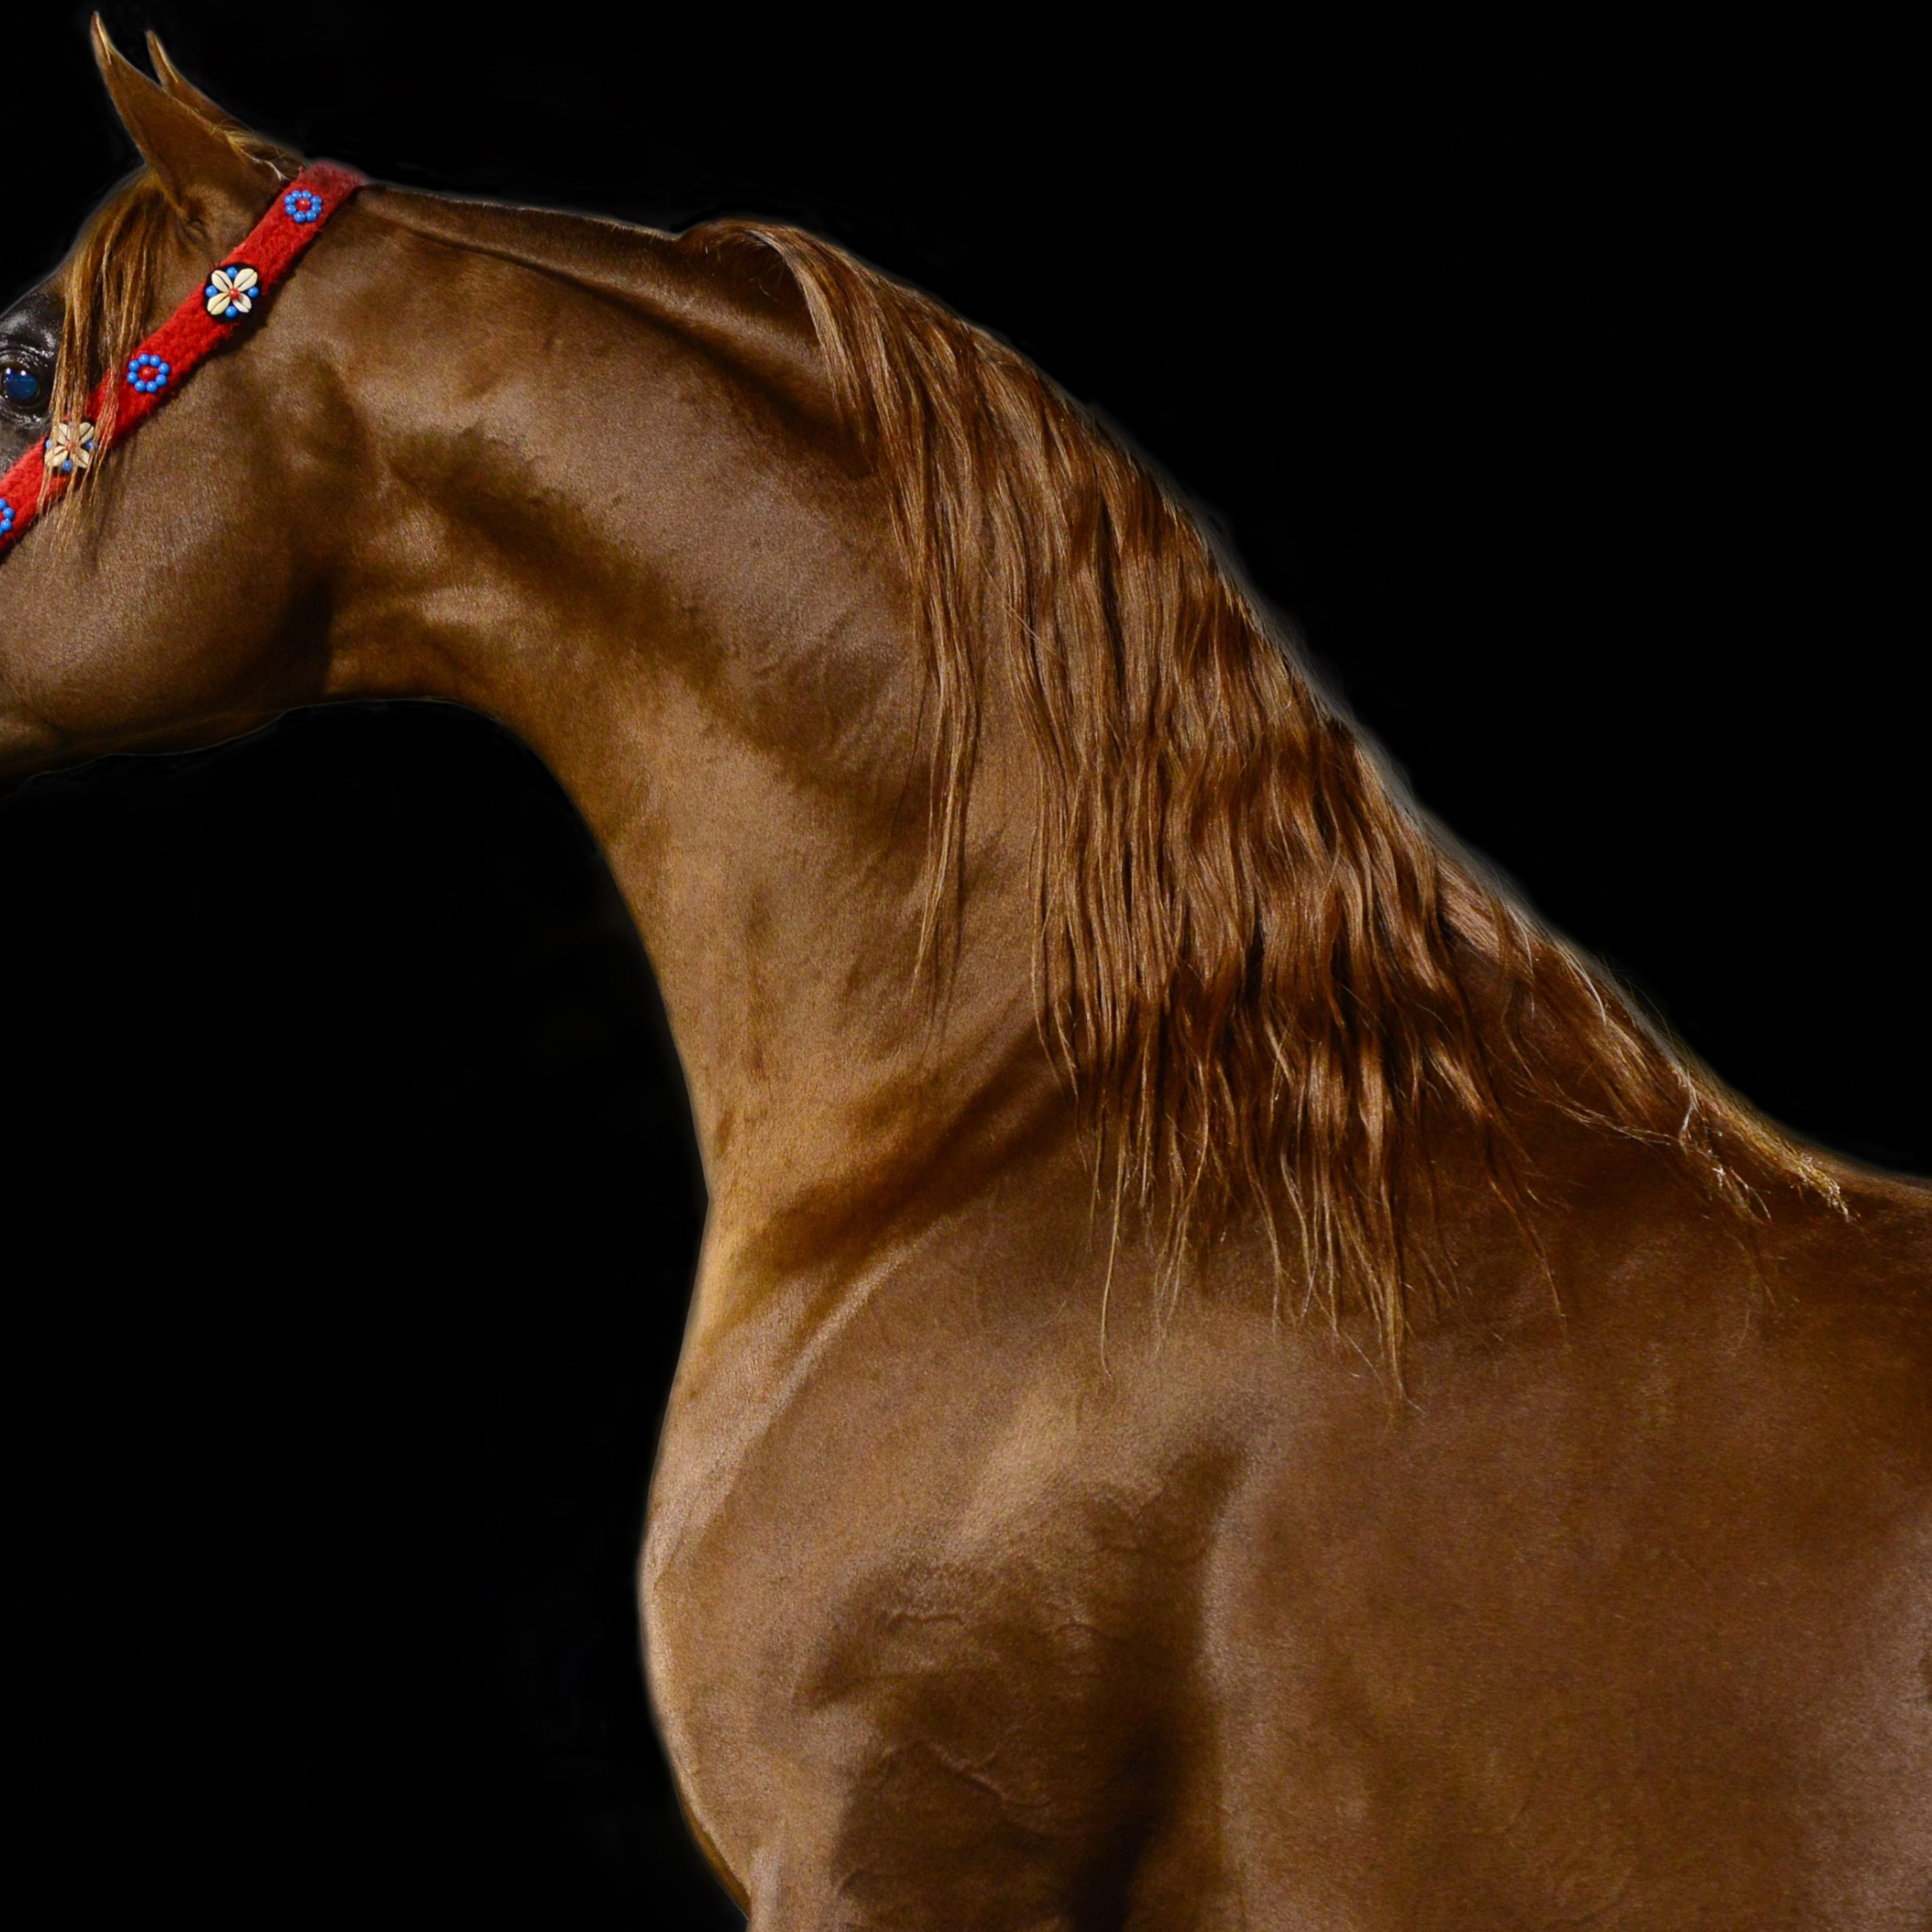 Arabian horse wallpaper 2224x2224